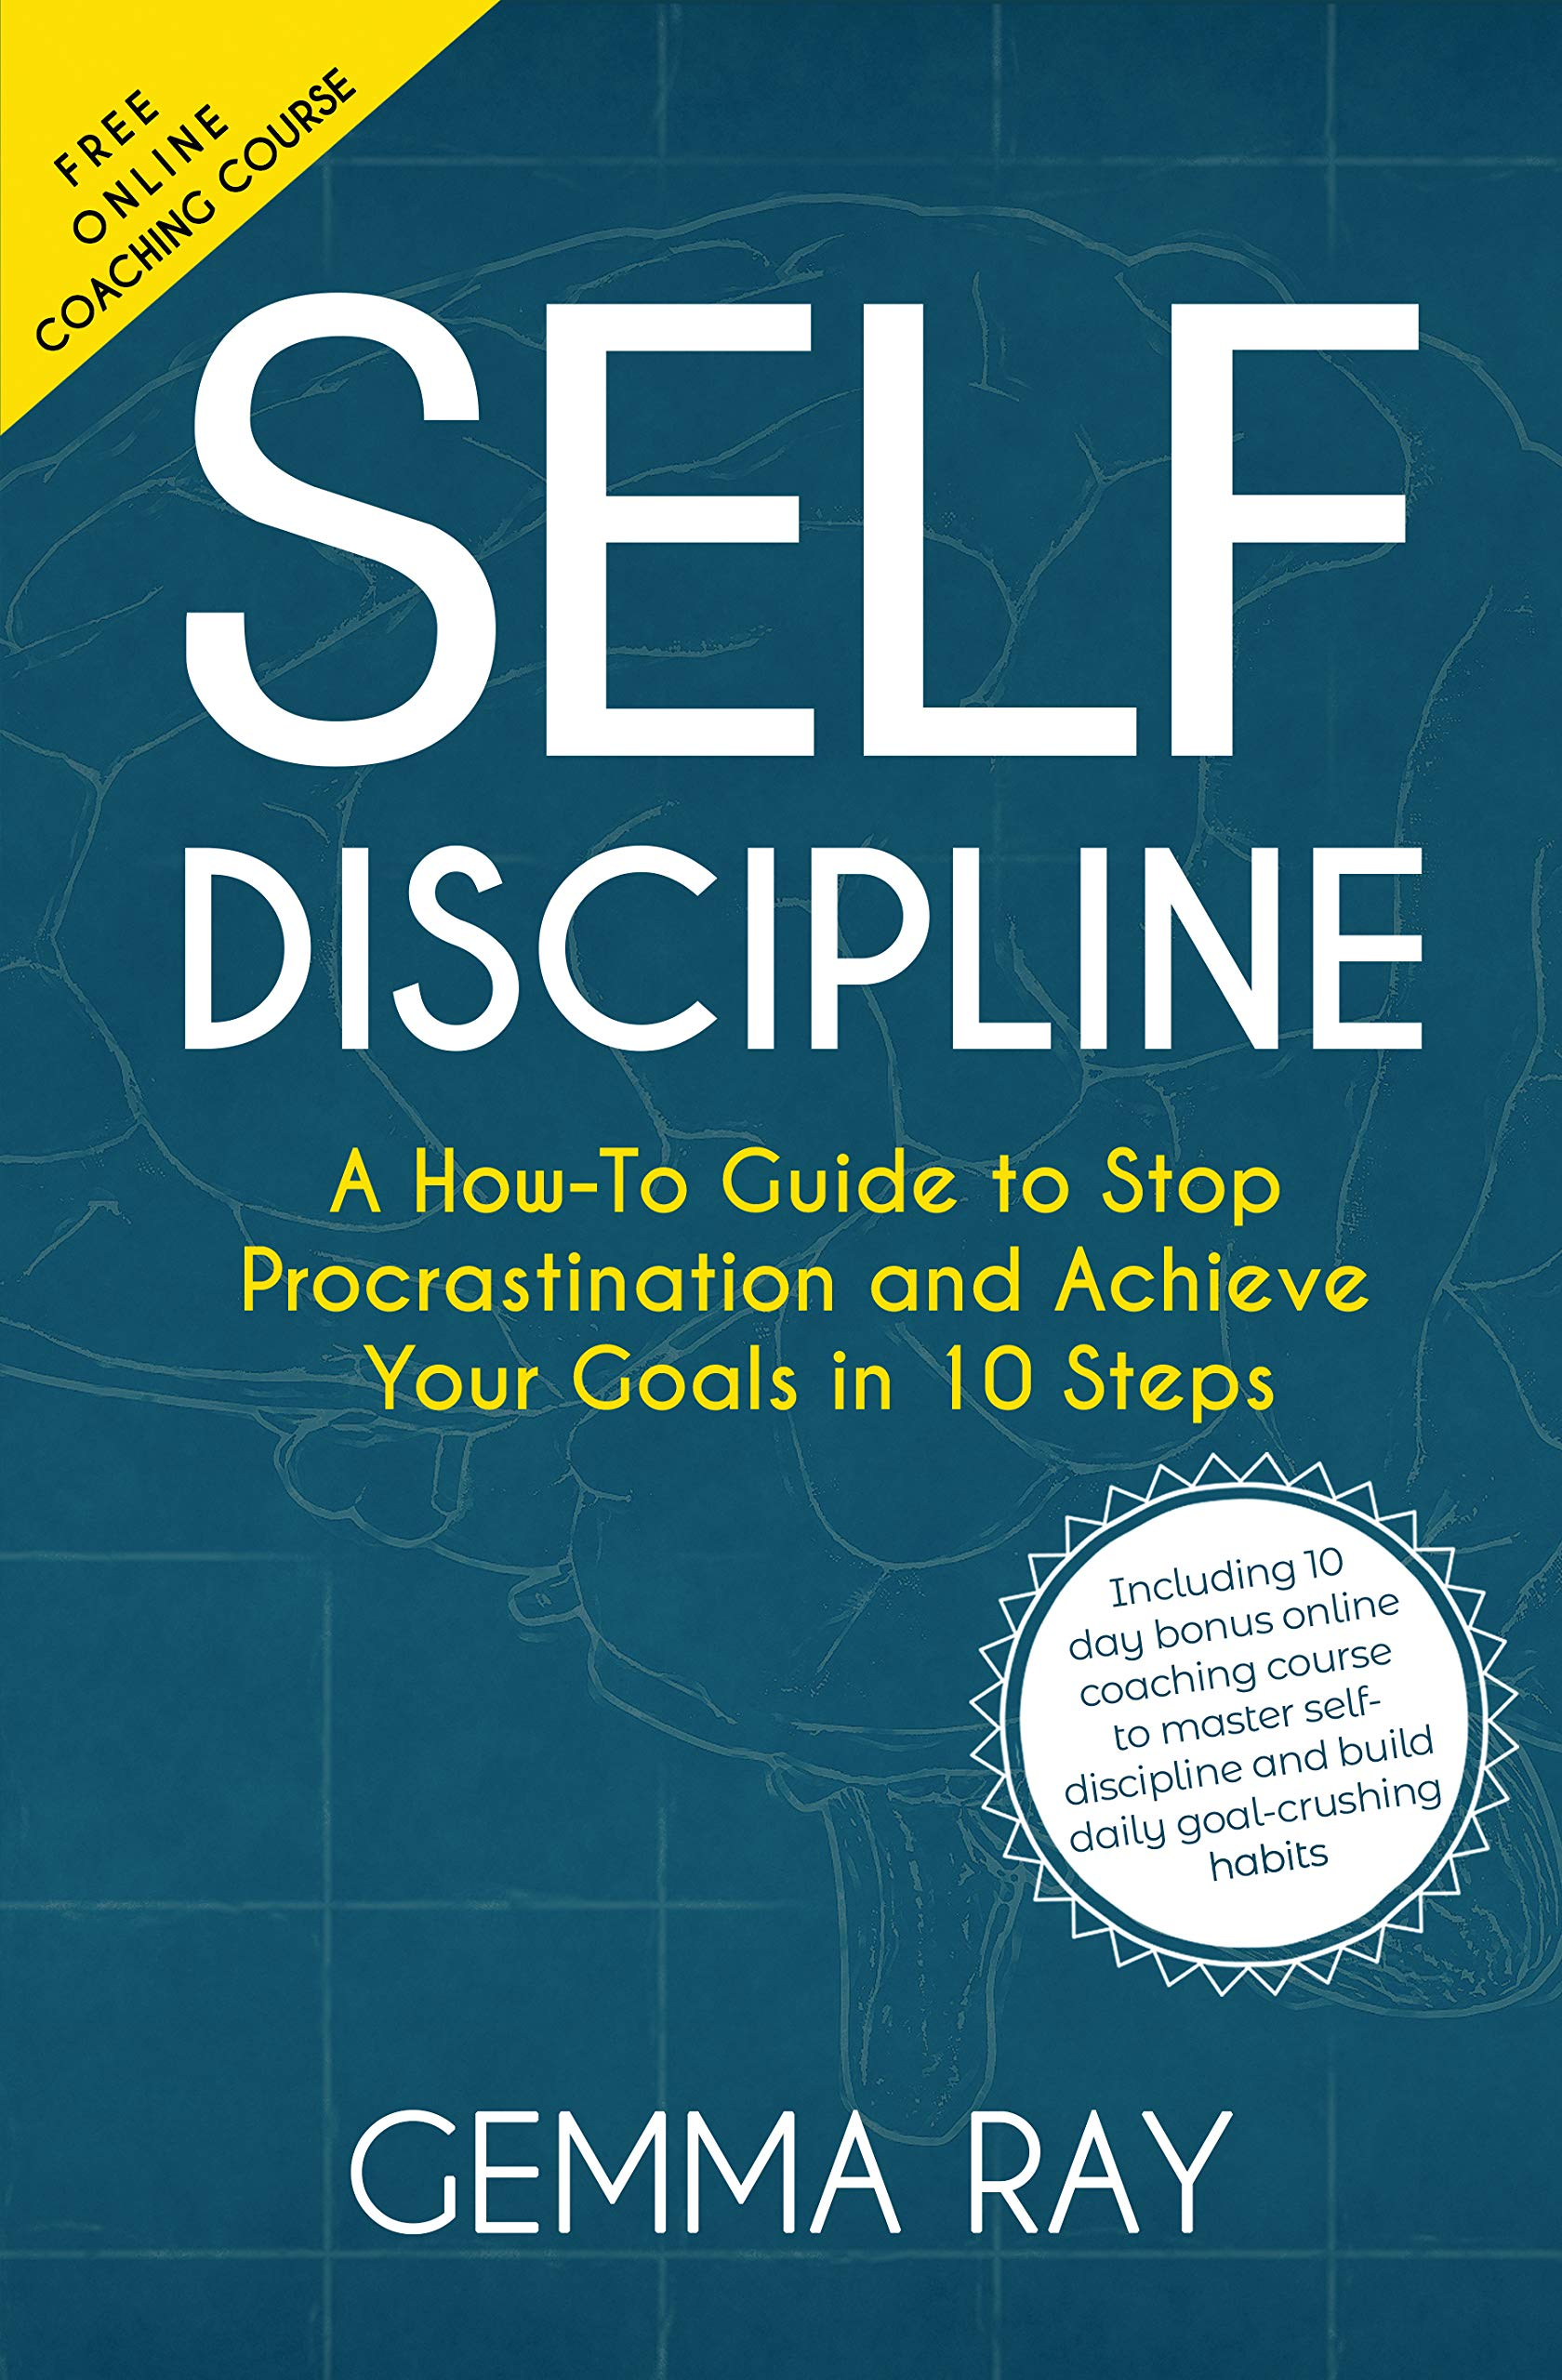 Self Discipline  A How To Guide To Stop Procrastination Achieve Your Goals In 10 Steps And Build Daily Goal Crushing Habits  English Edition